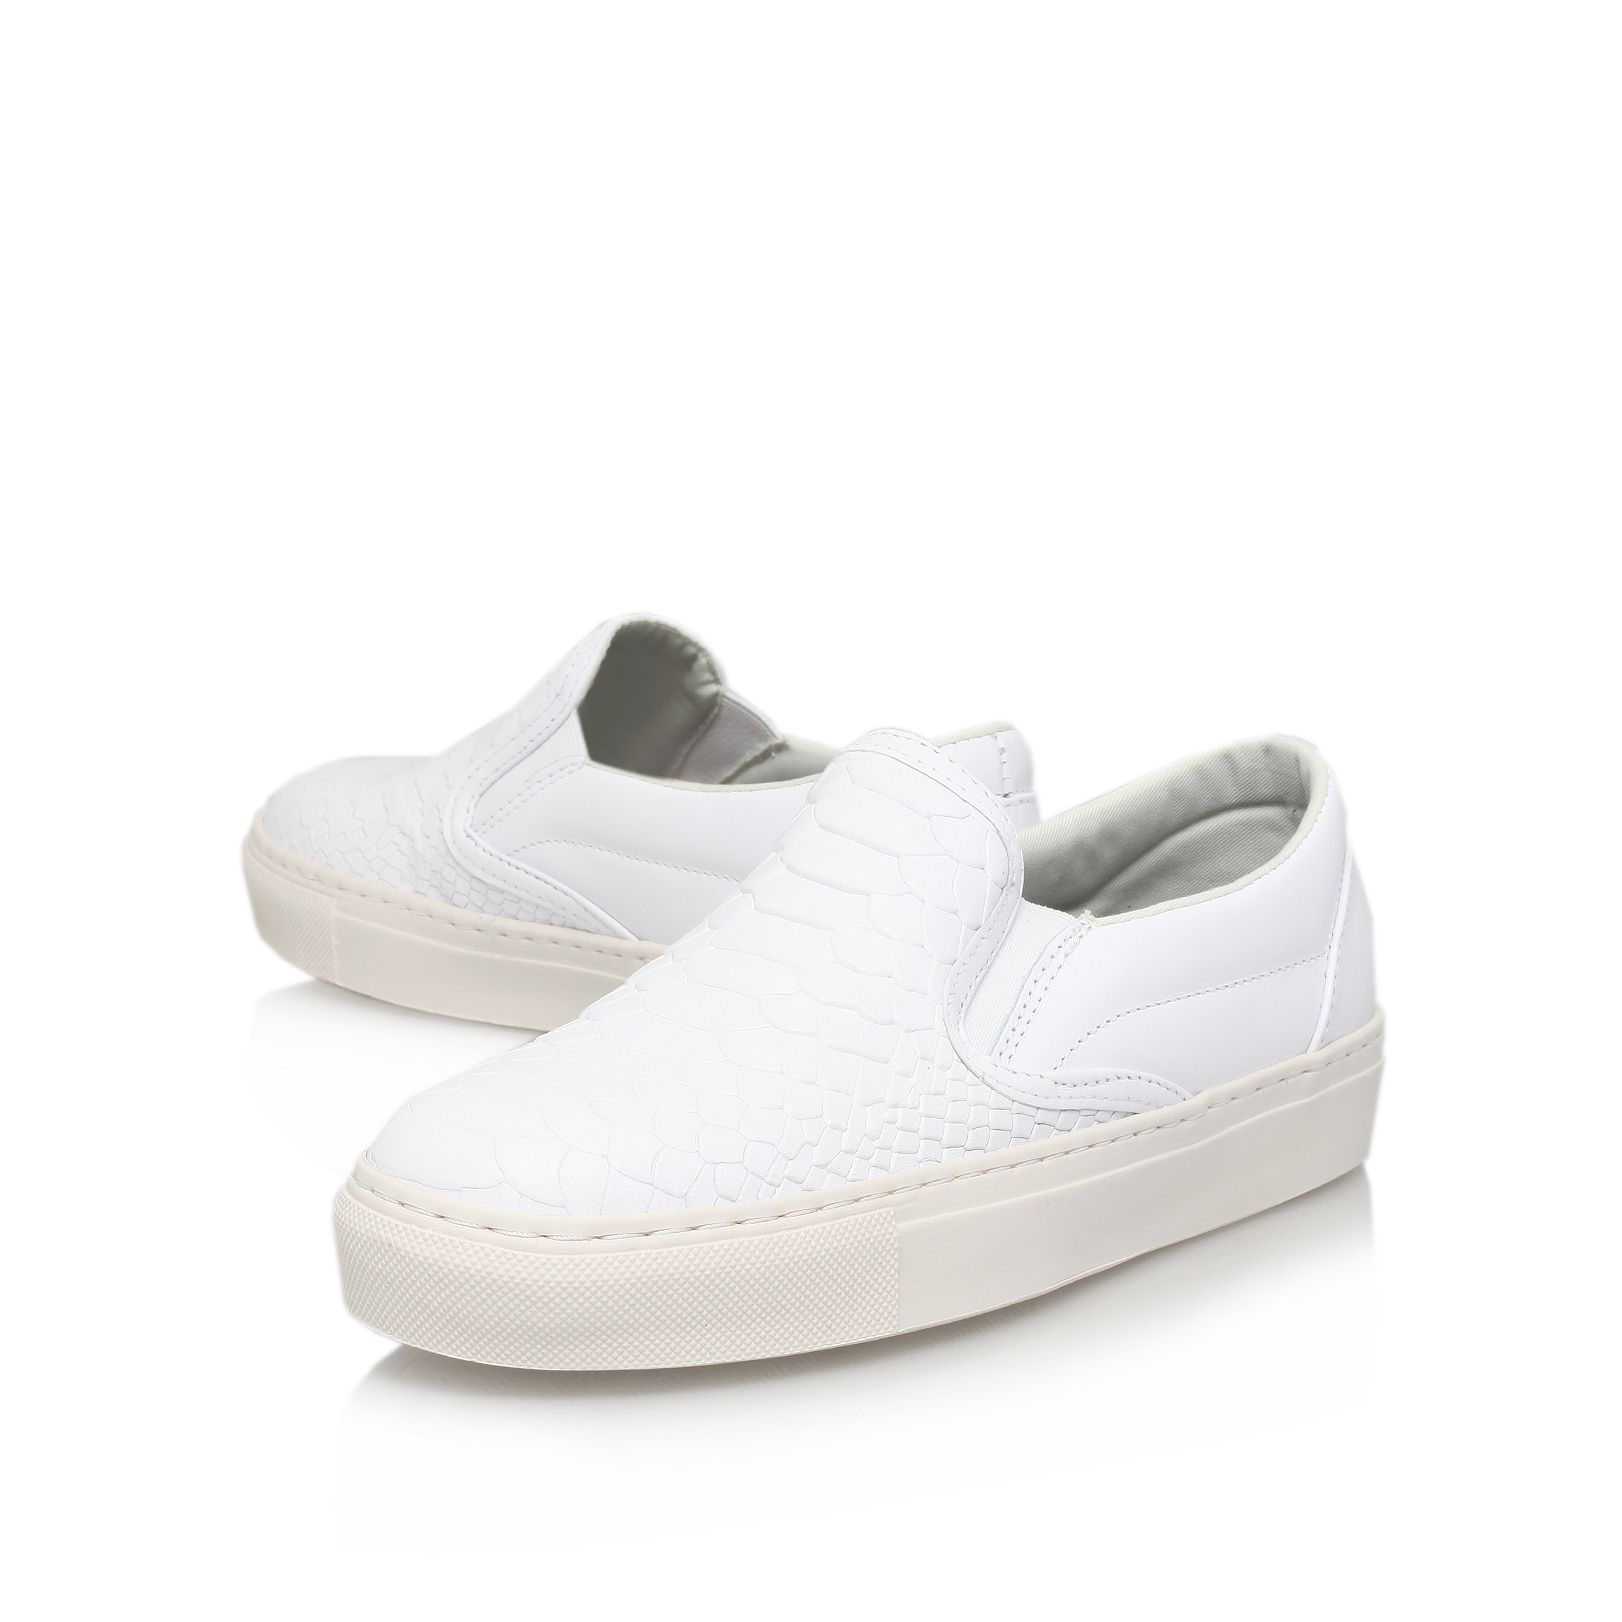 Londres casual slip on sneaker